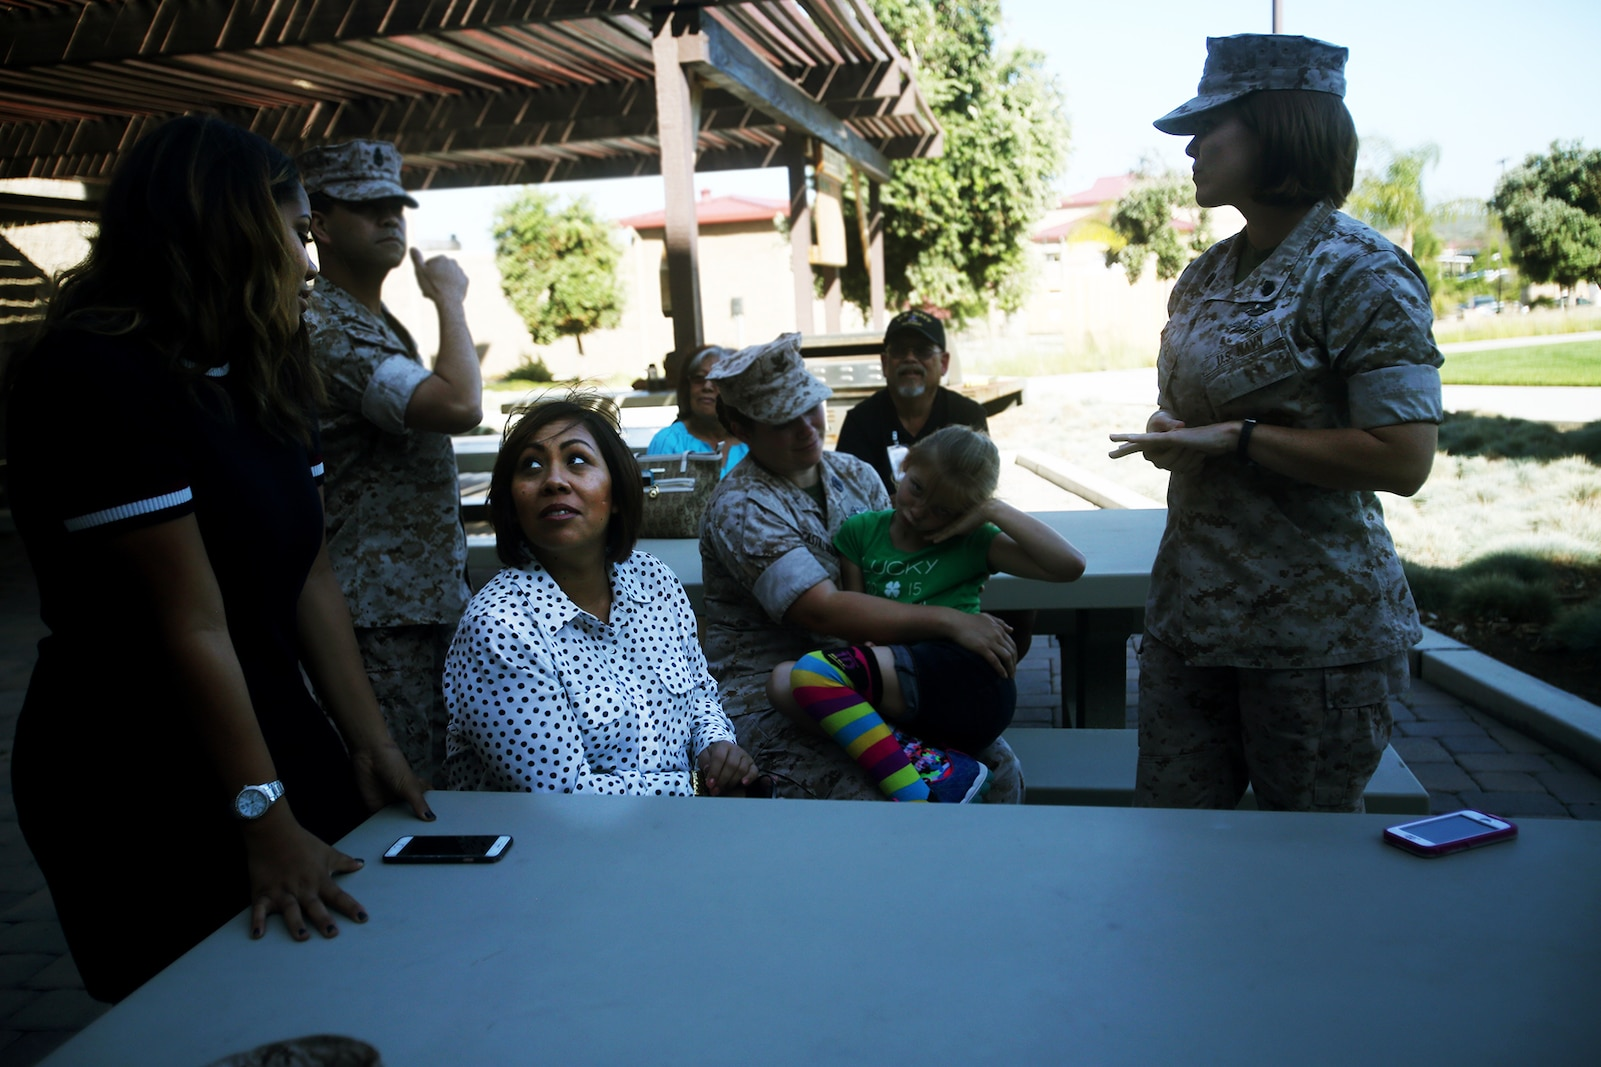 Chief Petty Officer Jaclyn Place waits with her neighbors during her award ceremony aboard Camp Pendleton, Calif., March 11, 2016. Place is a lead chief petty officer with the Headquarters Regimental Aid Station, 1st Marine Logistics Group, and was awarded an impact Navy and Marine Corps Commendation Medal for her selfless and decisive actions that saved the lives of her neighbors. (U.S. Marine Corps photo by Sgt. Laura Gauna/released)